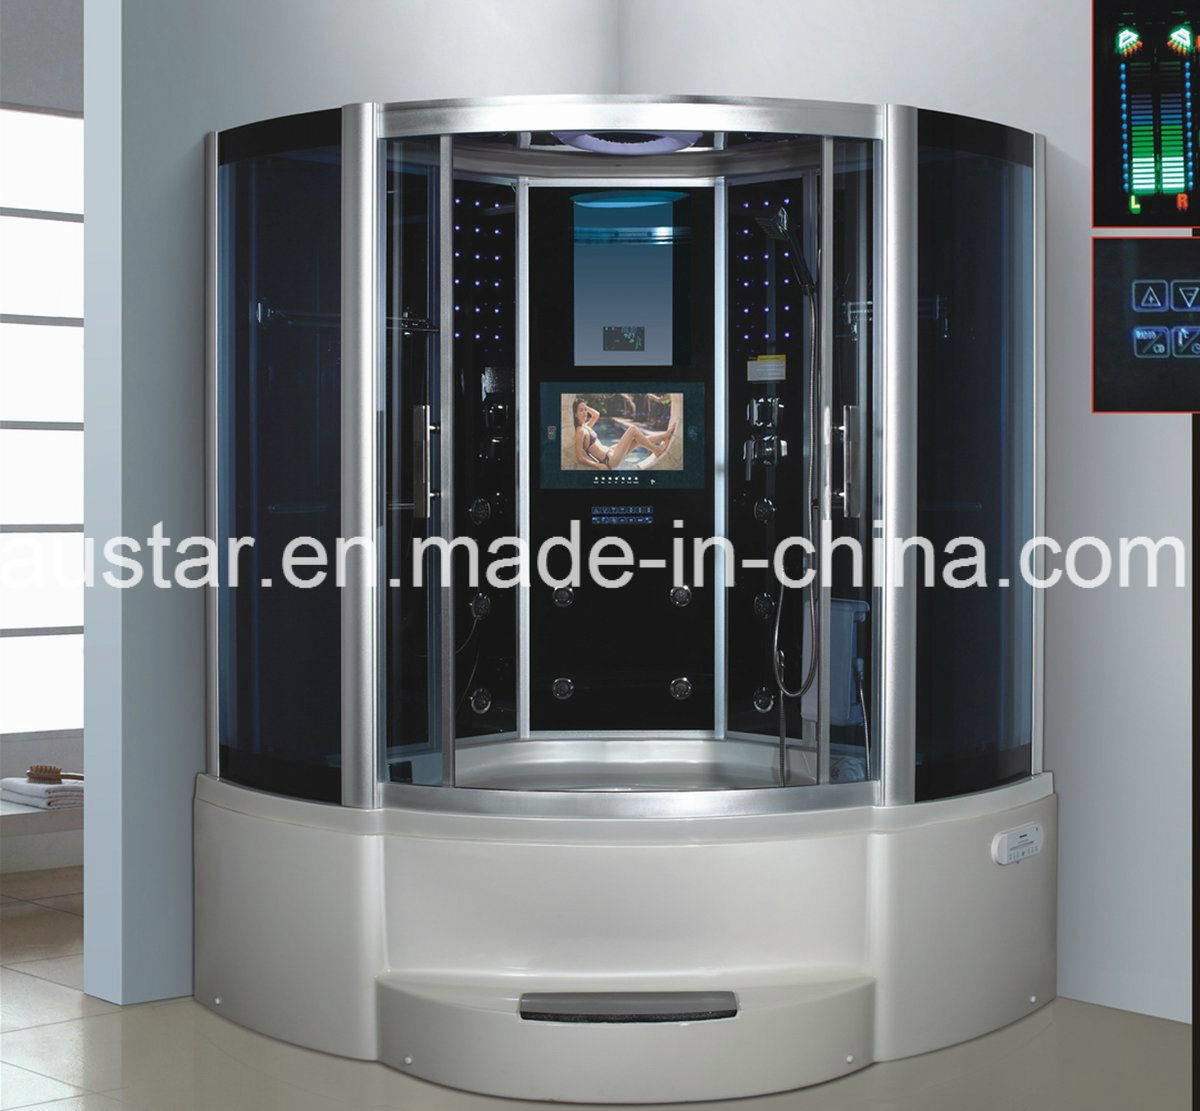 1500mm Sector Pearl Steam Sauna with Jacuzzi and Tvdvd (AT-G9051TVDVD)